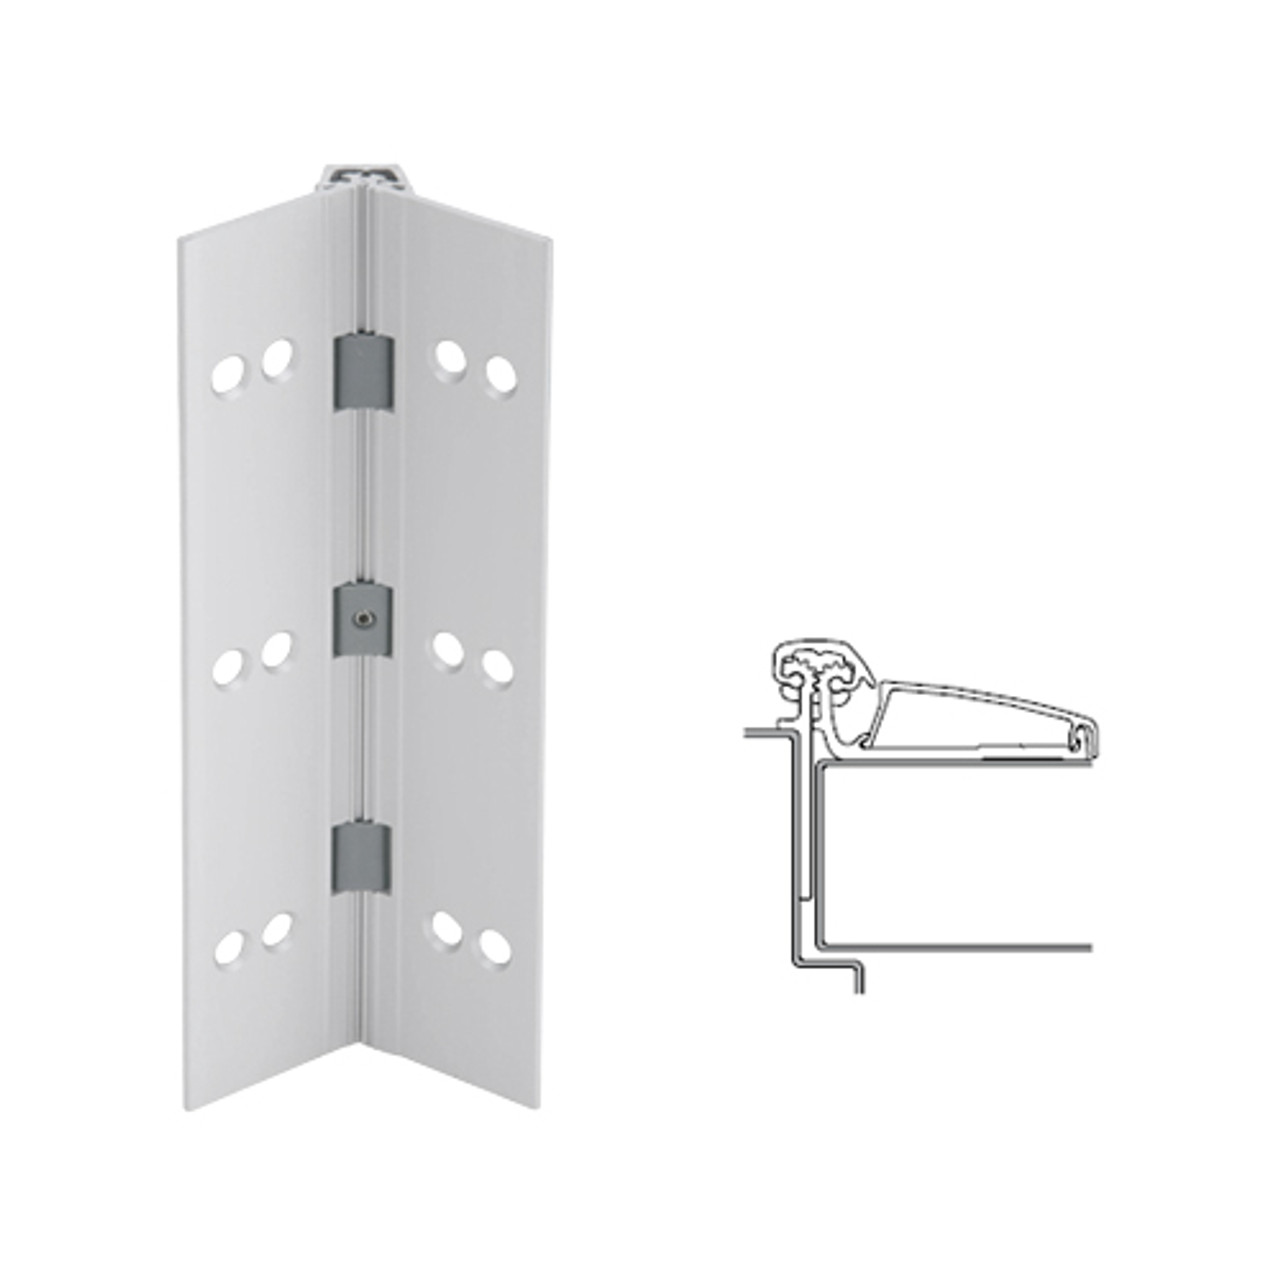 045XY-US28-120-SECHM IVES Adjustable Half Surface Continuous Geared Hinges with Security Screws - Hex Pin Drive in Satin Aluminum